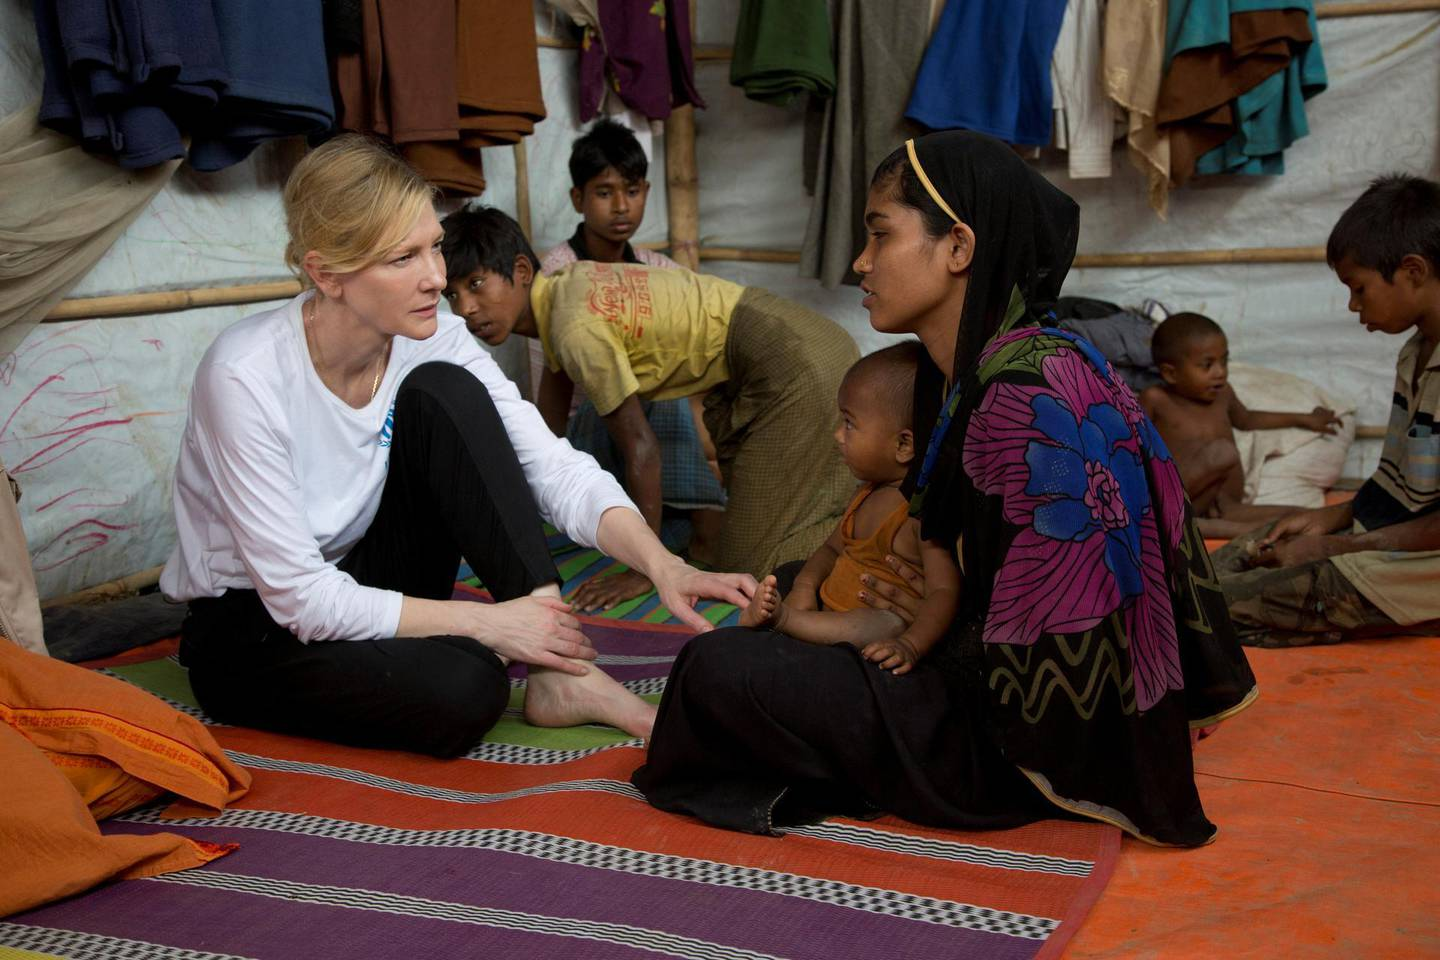 Cate Blanchett, Goodwill Ambassador for UNHCR, the UN Refugee Agency, speaks with Rohingya refugee Nur Fatima and her one-year-old son at the Nayapara refugee camp near Cox's Bazar, Bangladesh March 15, 2018. UNHCR/Hector Perez/Handout via REUTERS ATTENTION EDITORS - THIS IMAGE WAS PROVIDED BY A THIRD PARTY. MANDATORY CREDIT. NO RESALES. NO ARCHIVES. EDITORIAL USE ONLY IN REPORTING ON - UNHCR - WORLD REFUGEE DAY. NO NEW USE AFTER JULY  20, 2021.